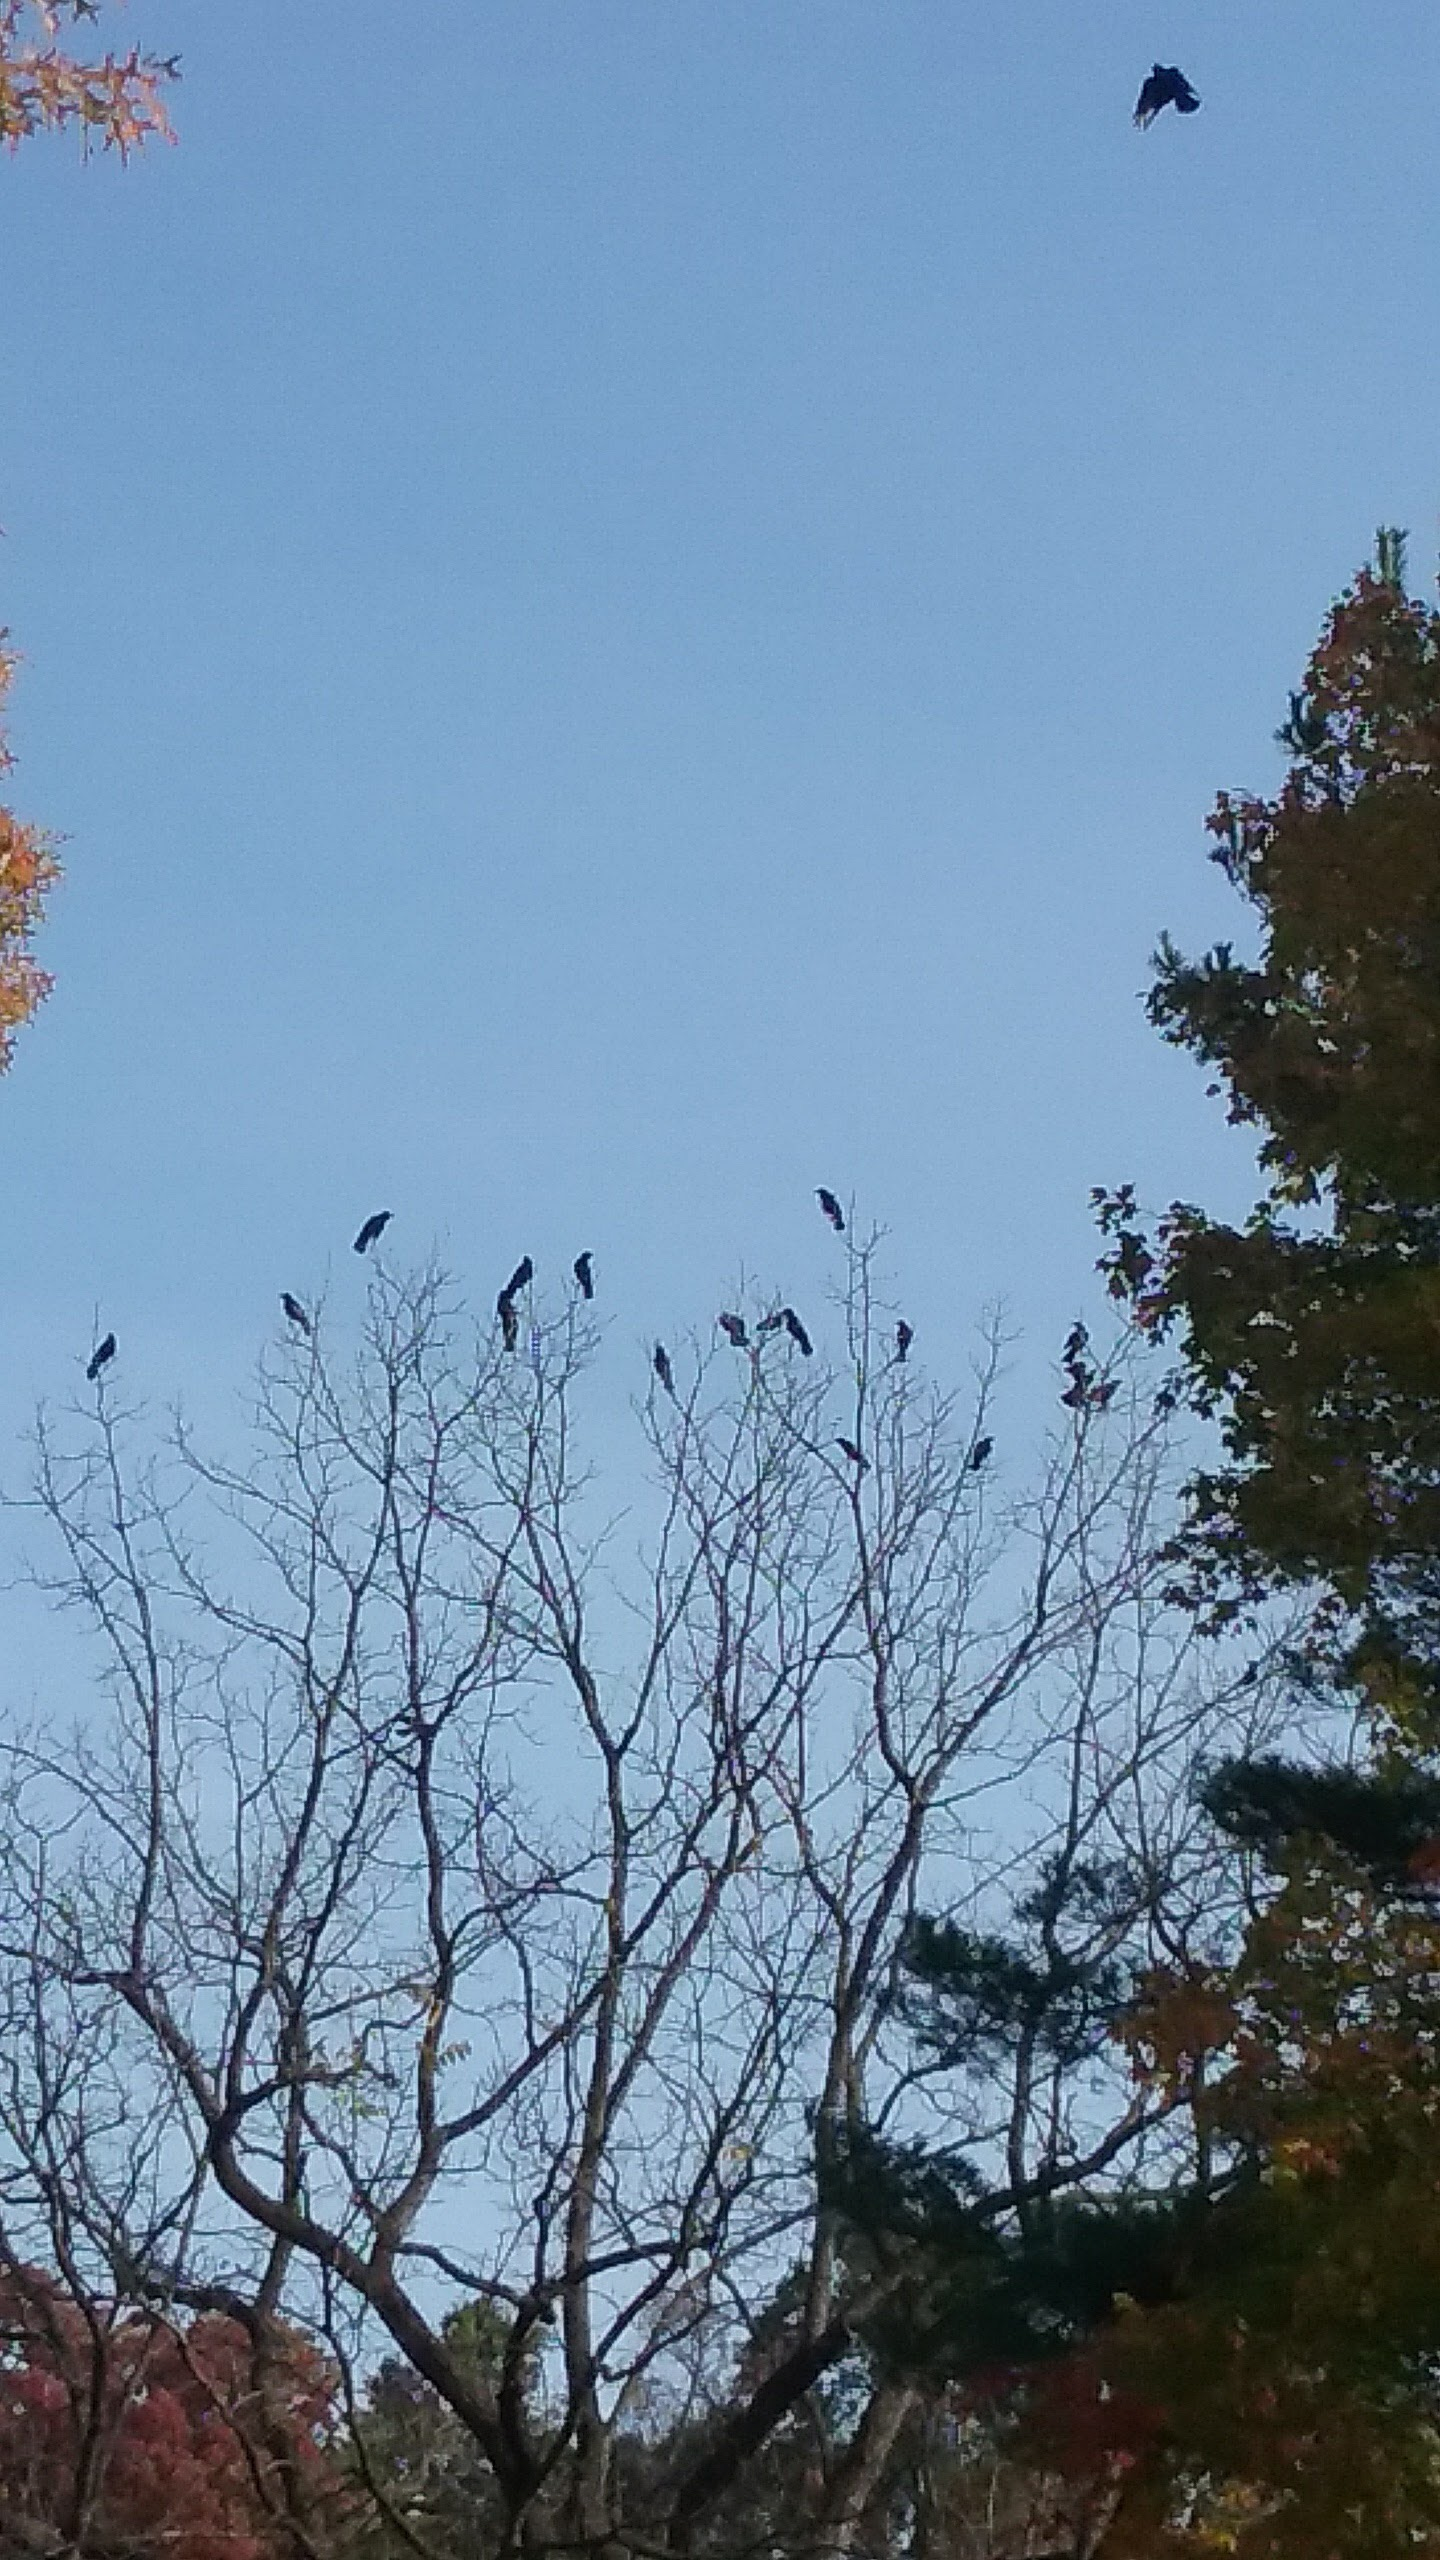 crows in tree and on the wing